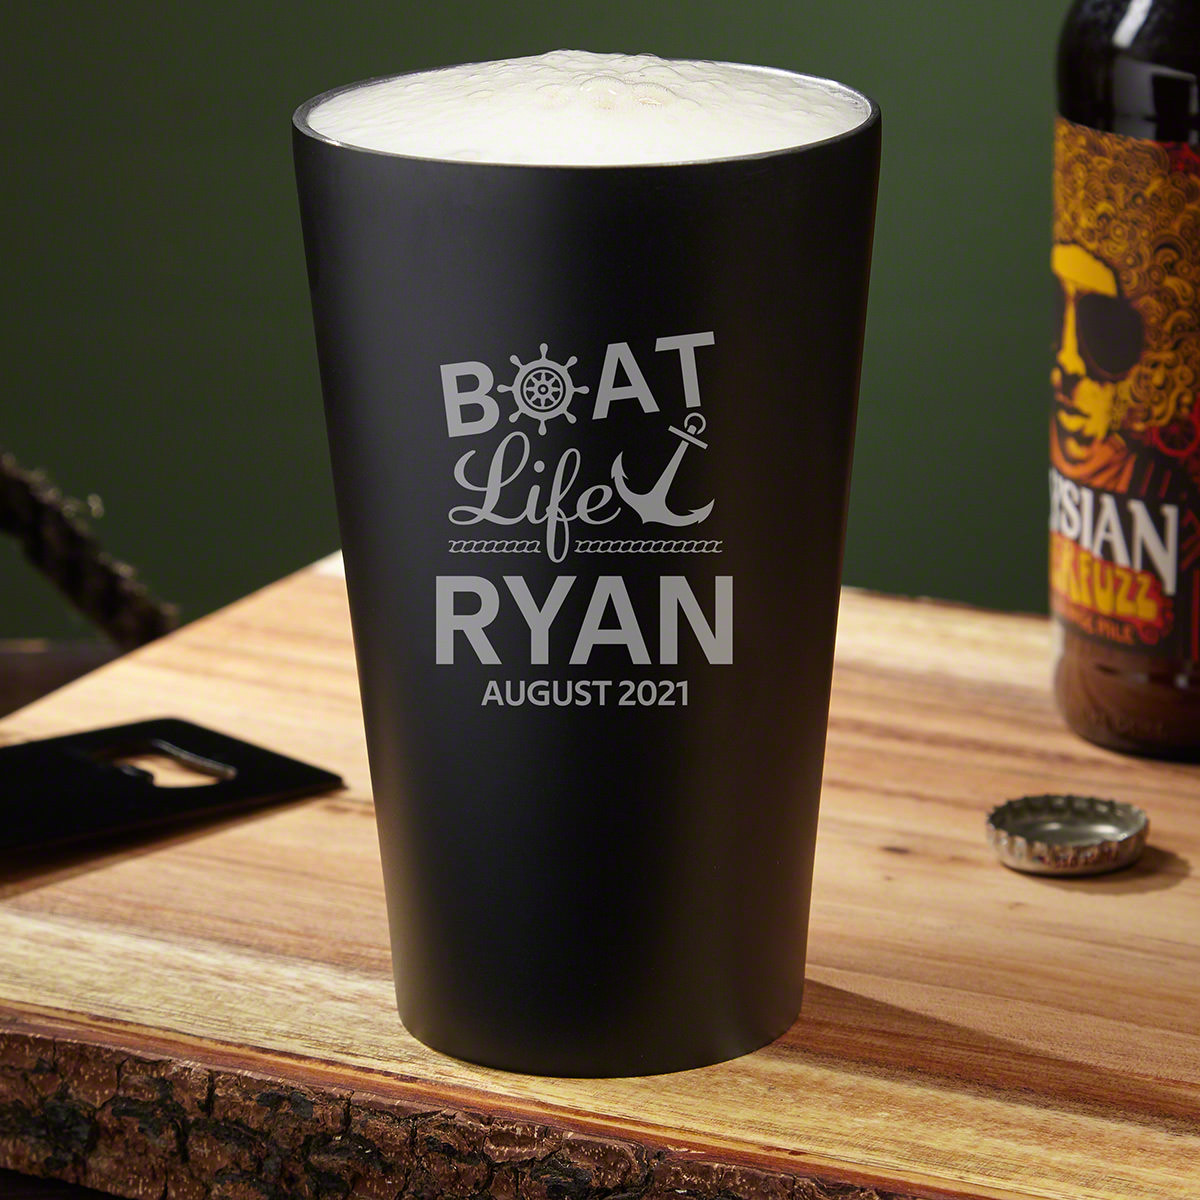 Innovations to classic glasses can make all the difference. To a traditional pint glass, the innovation to make it a customized stainless steel pint glass is a huge upgrade for boaters. This unconventional piece of glassware features vacuum-sealed, double #best